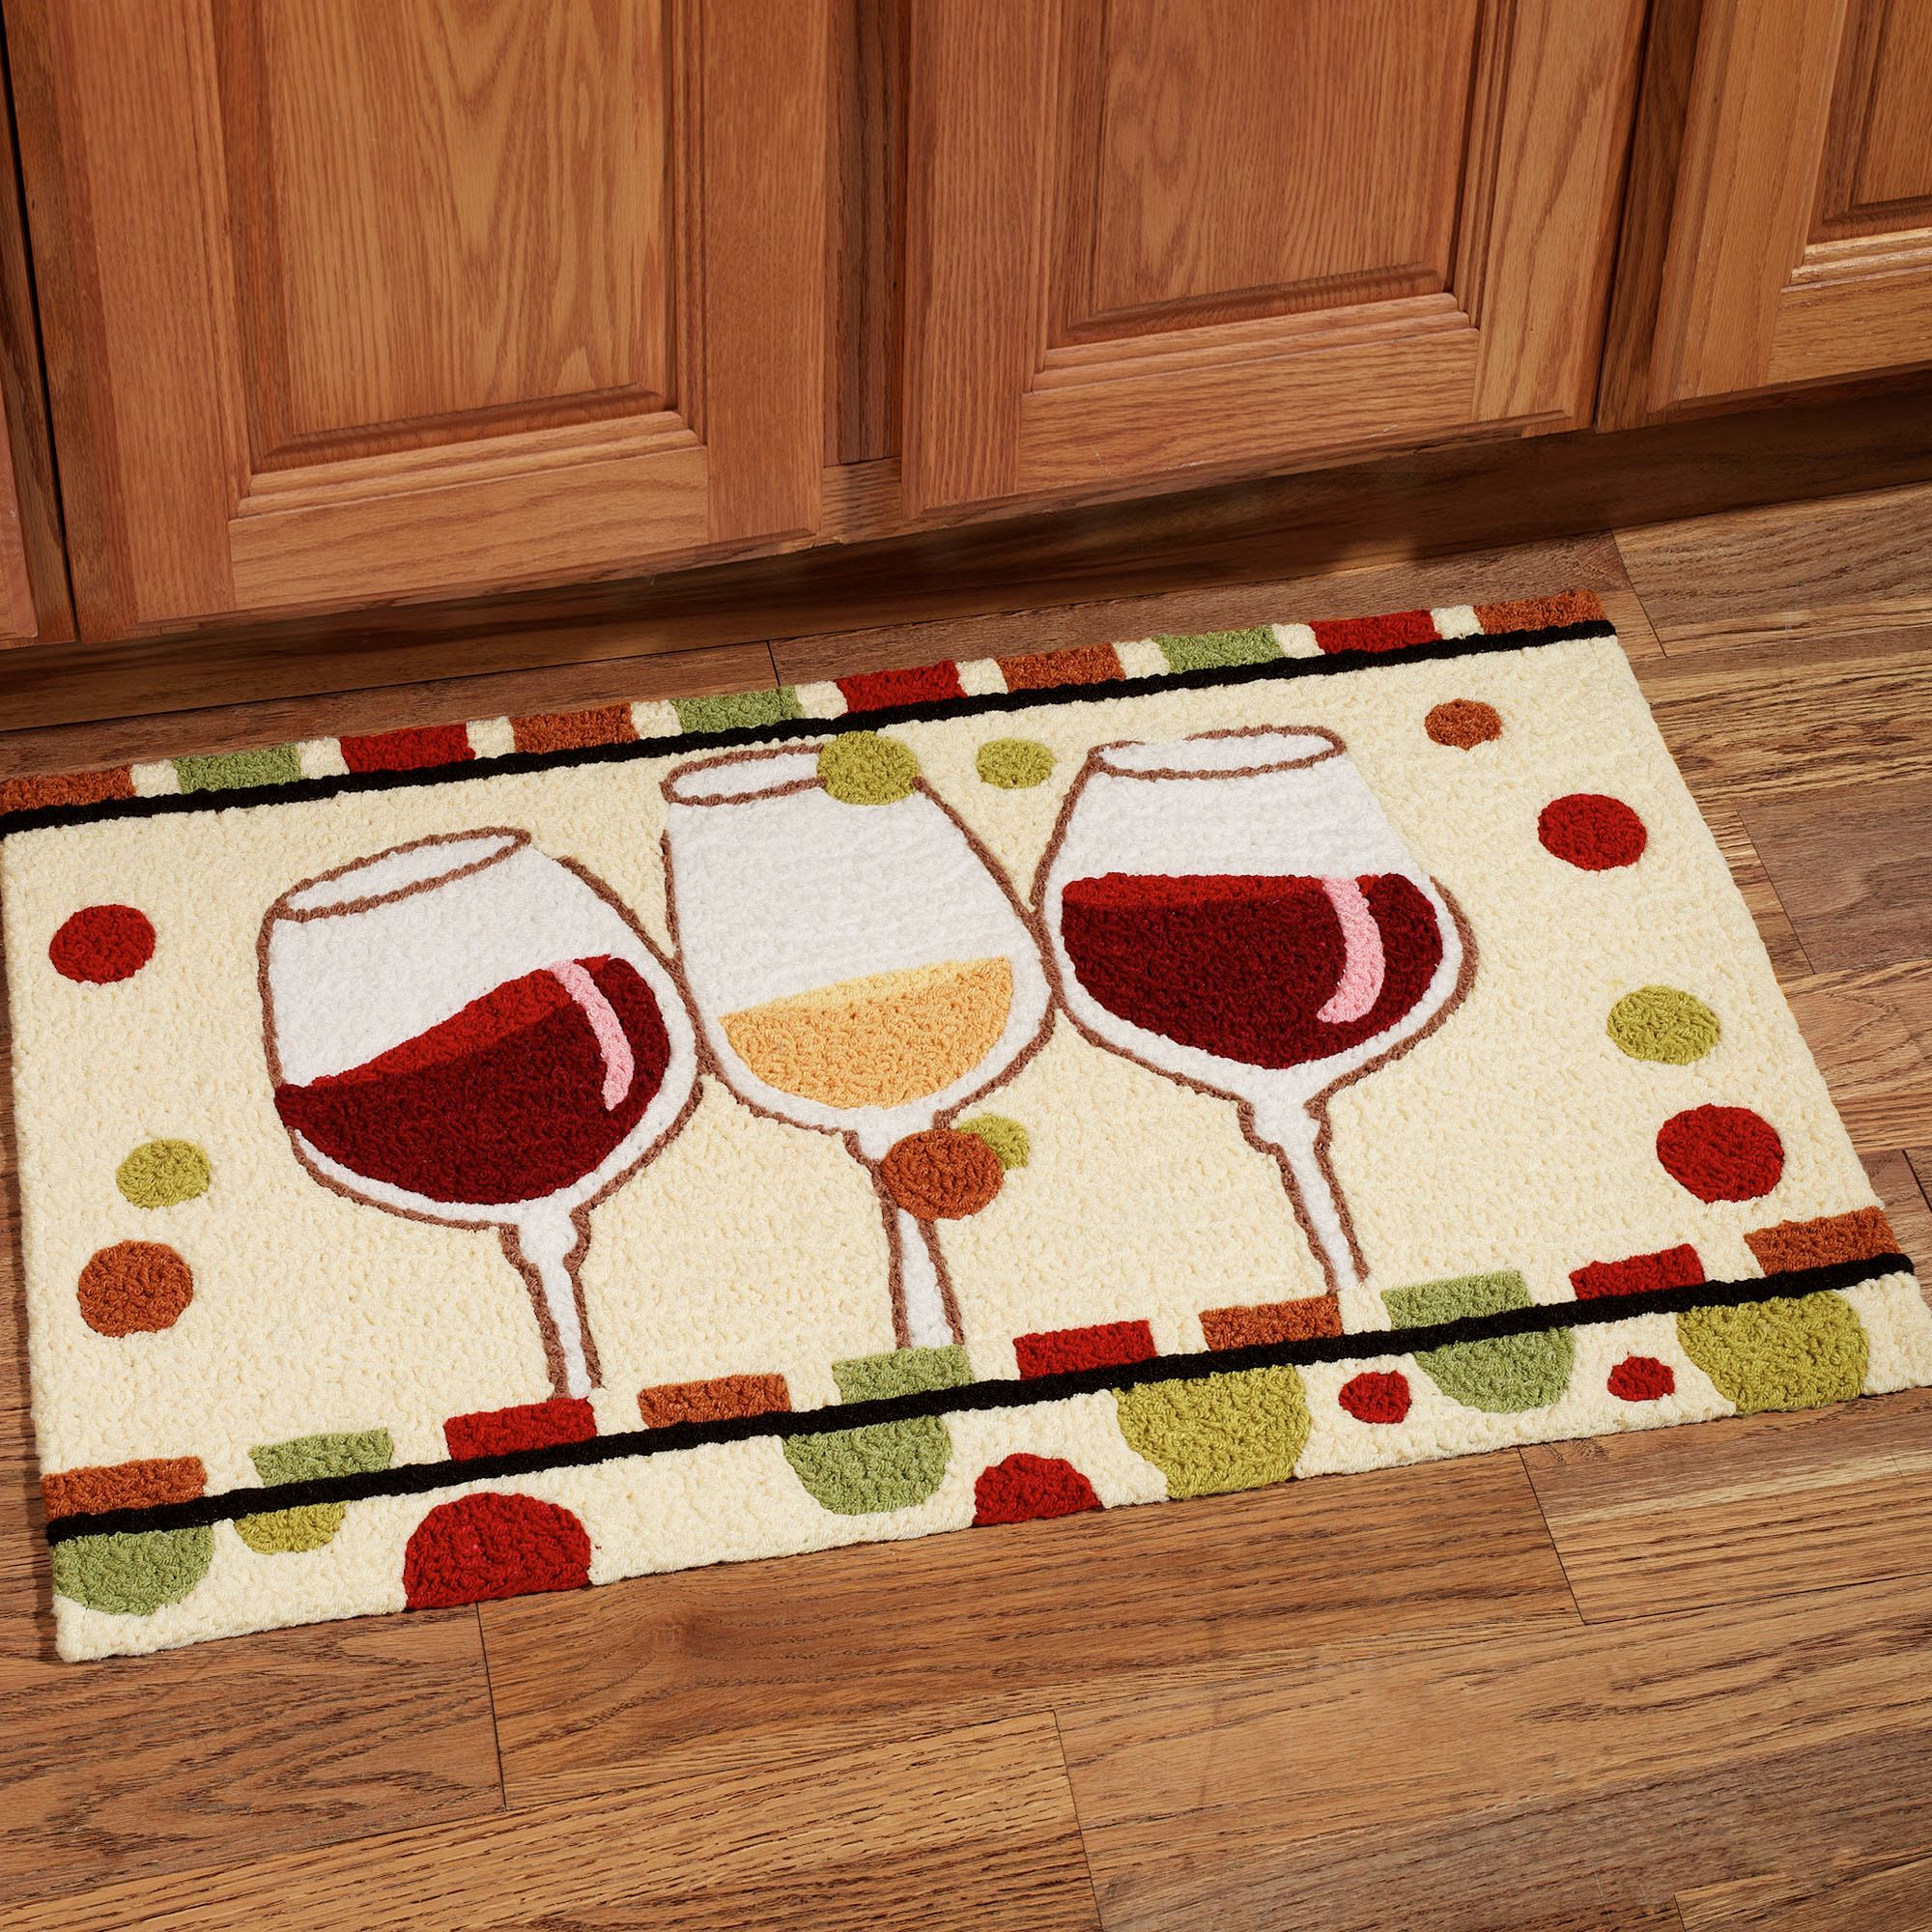 En Vin Wine Glass Handmade Kitchen Rug